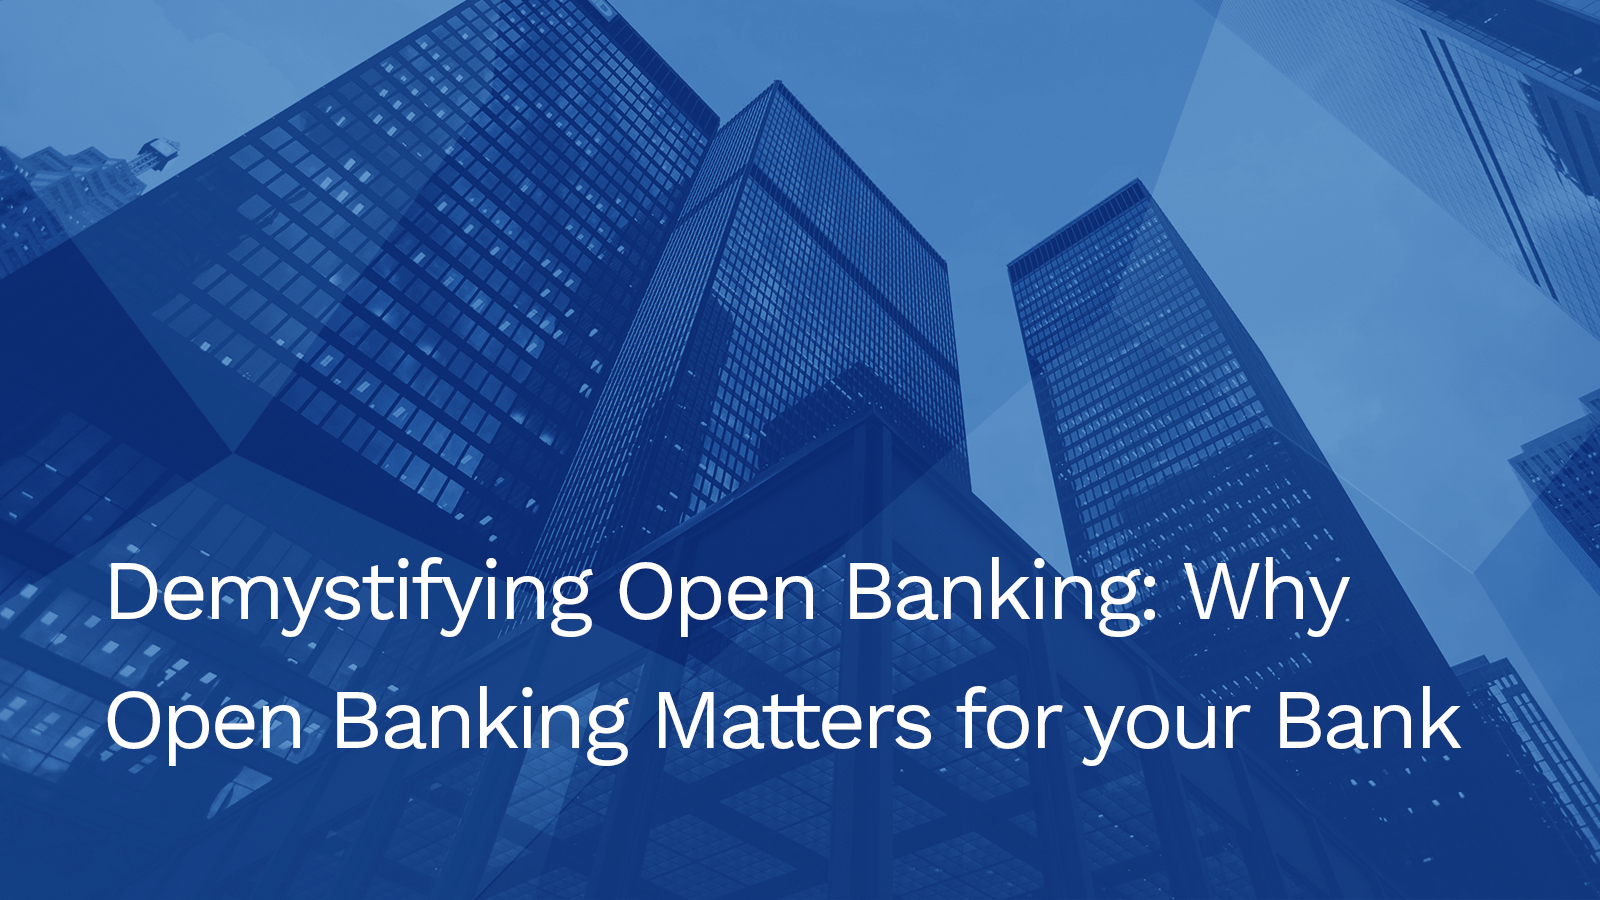 Demystifying Open Banking: Why Open Banking Matters for your Bank